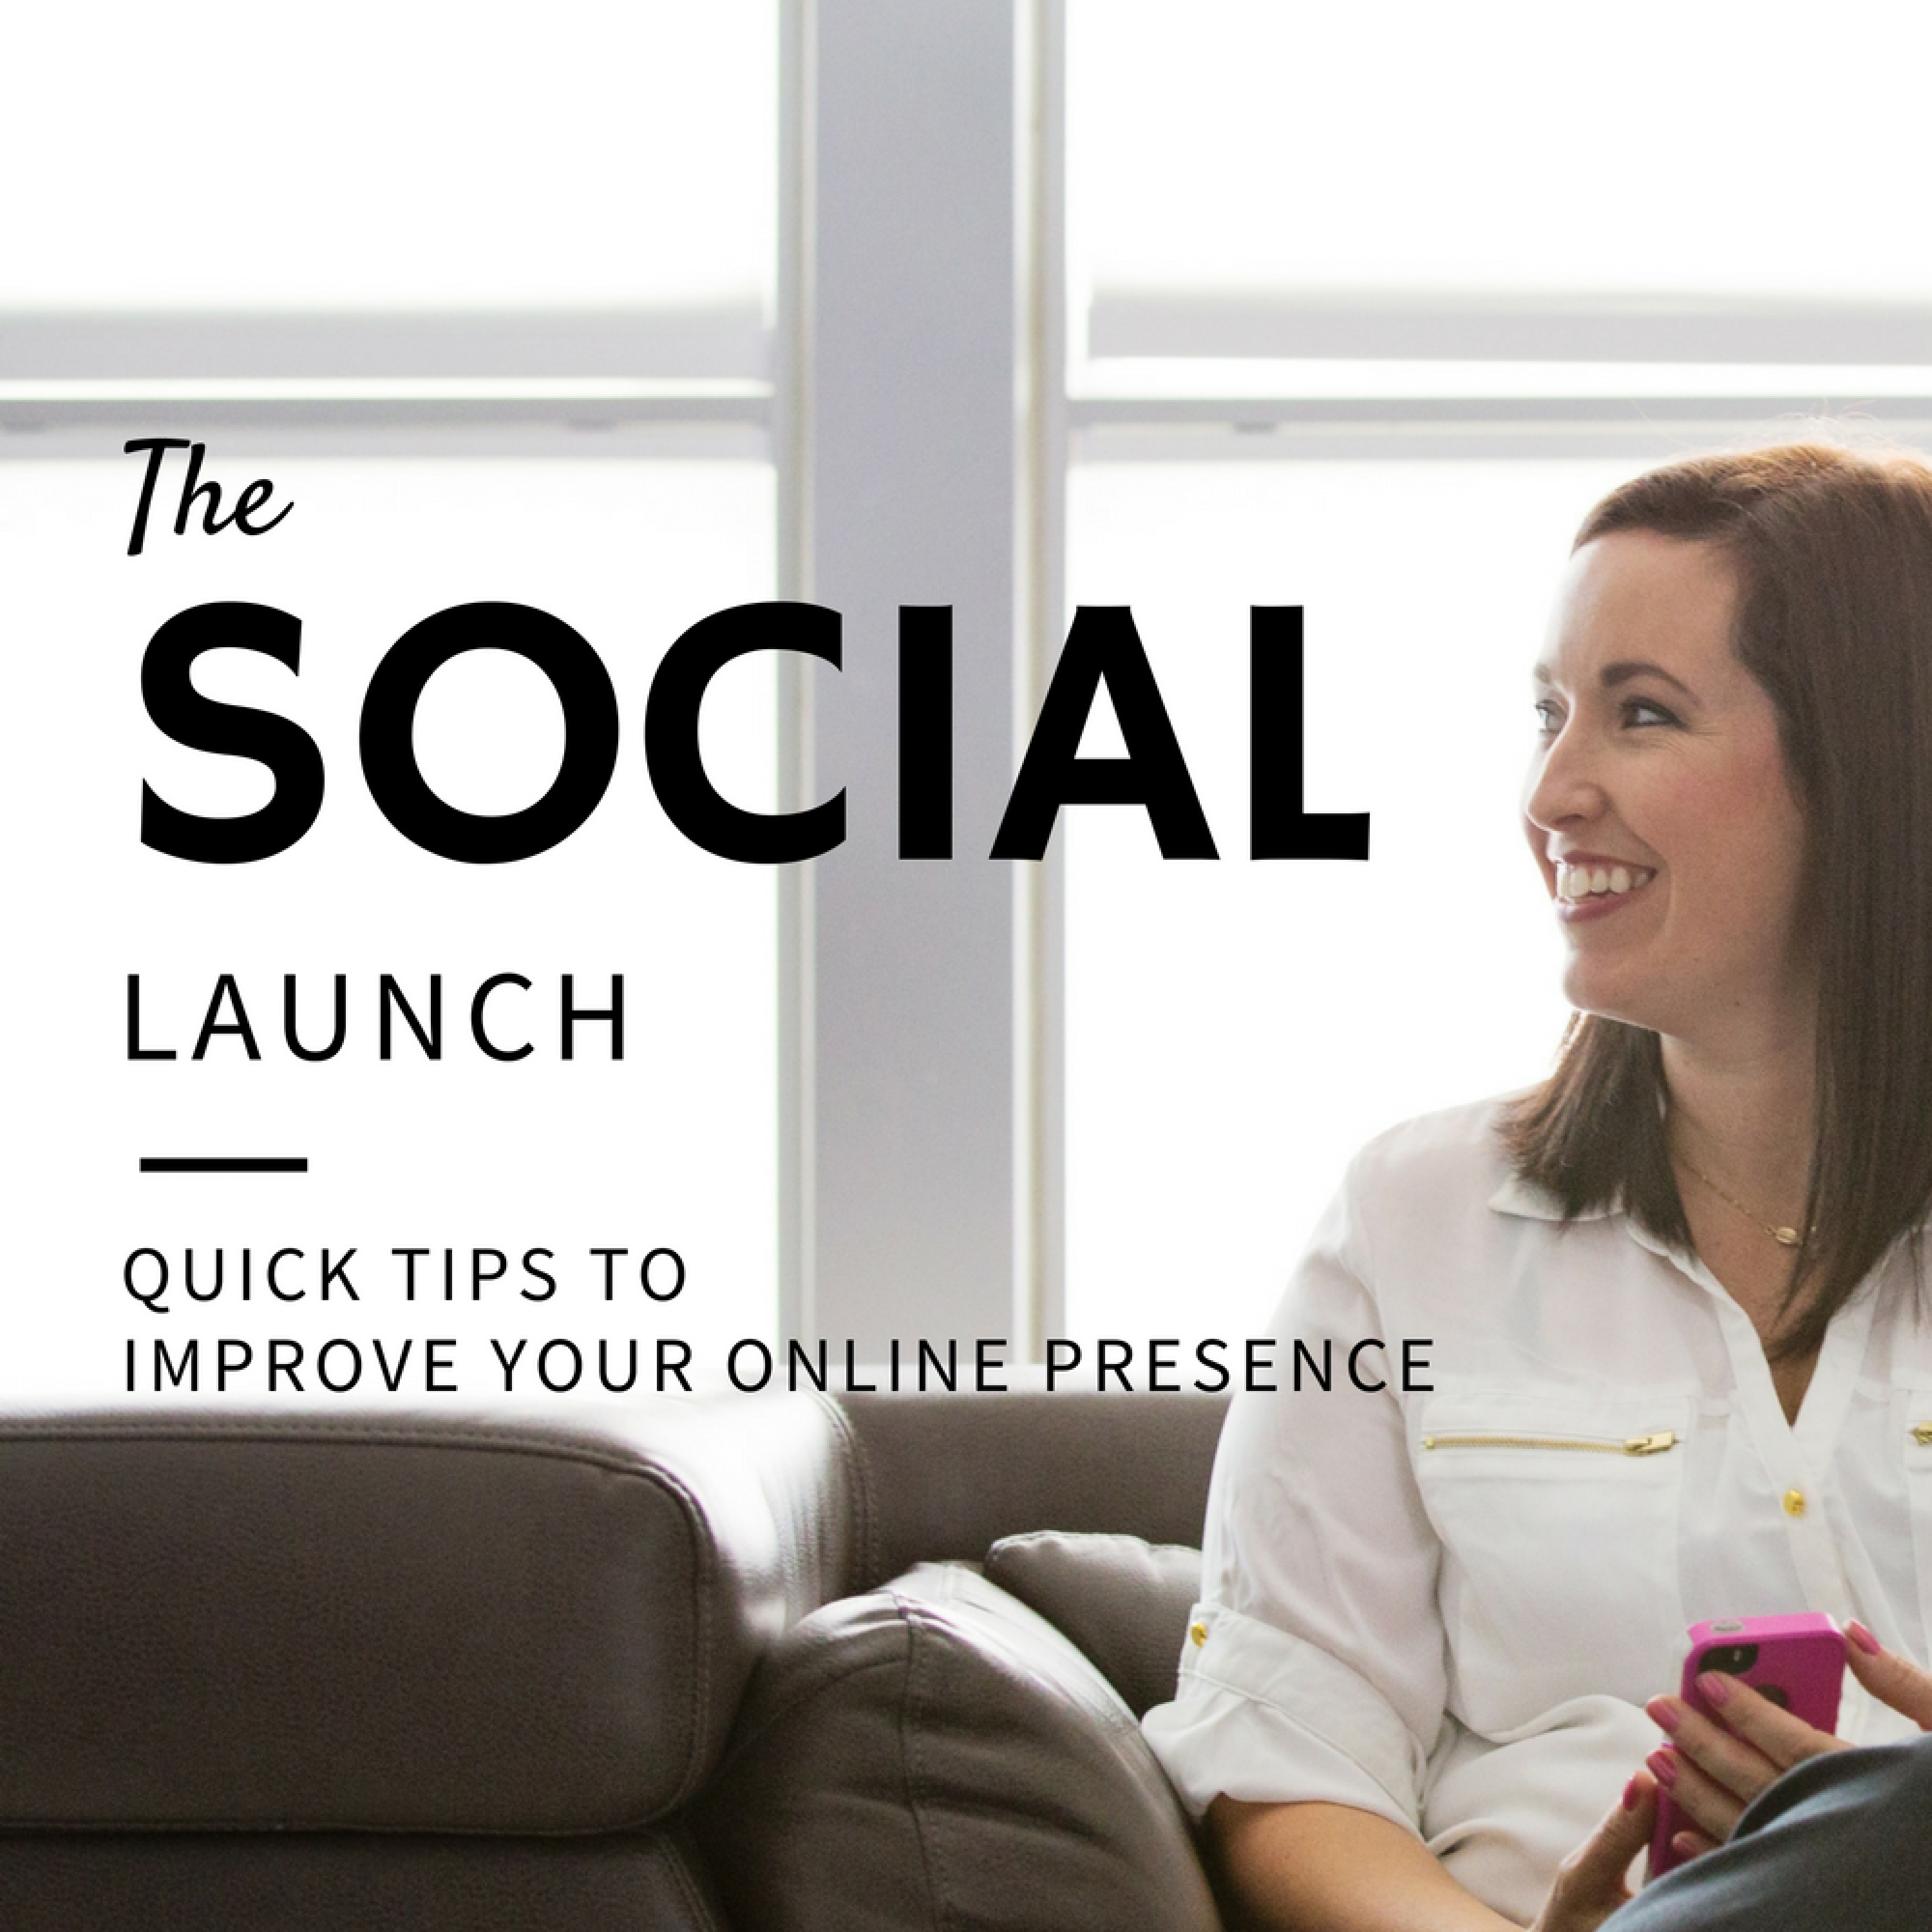 The Social Launch